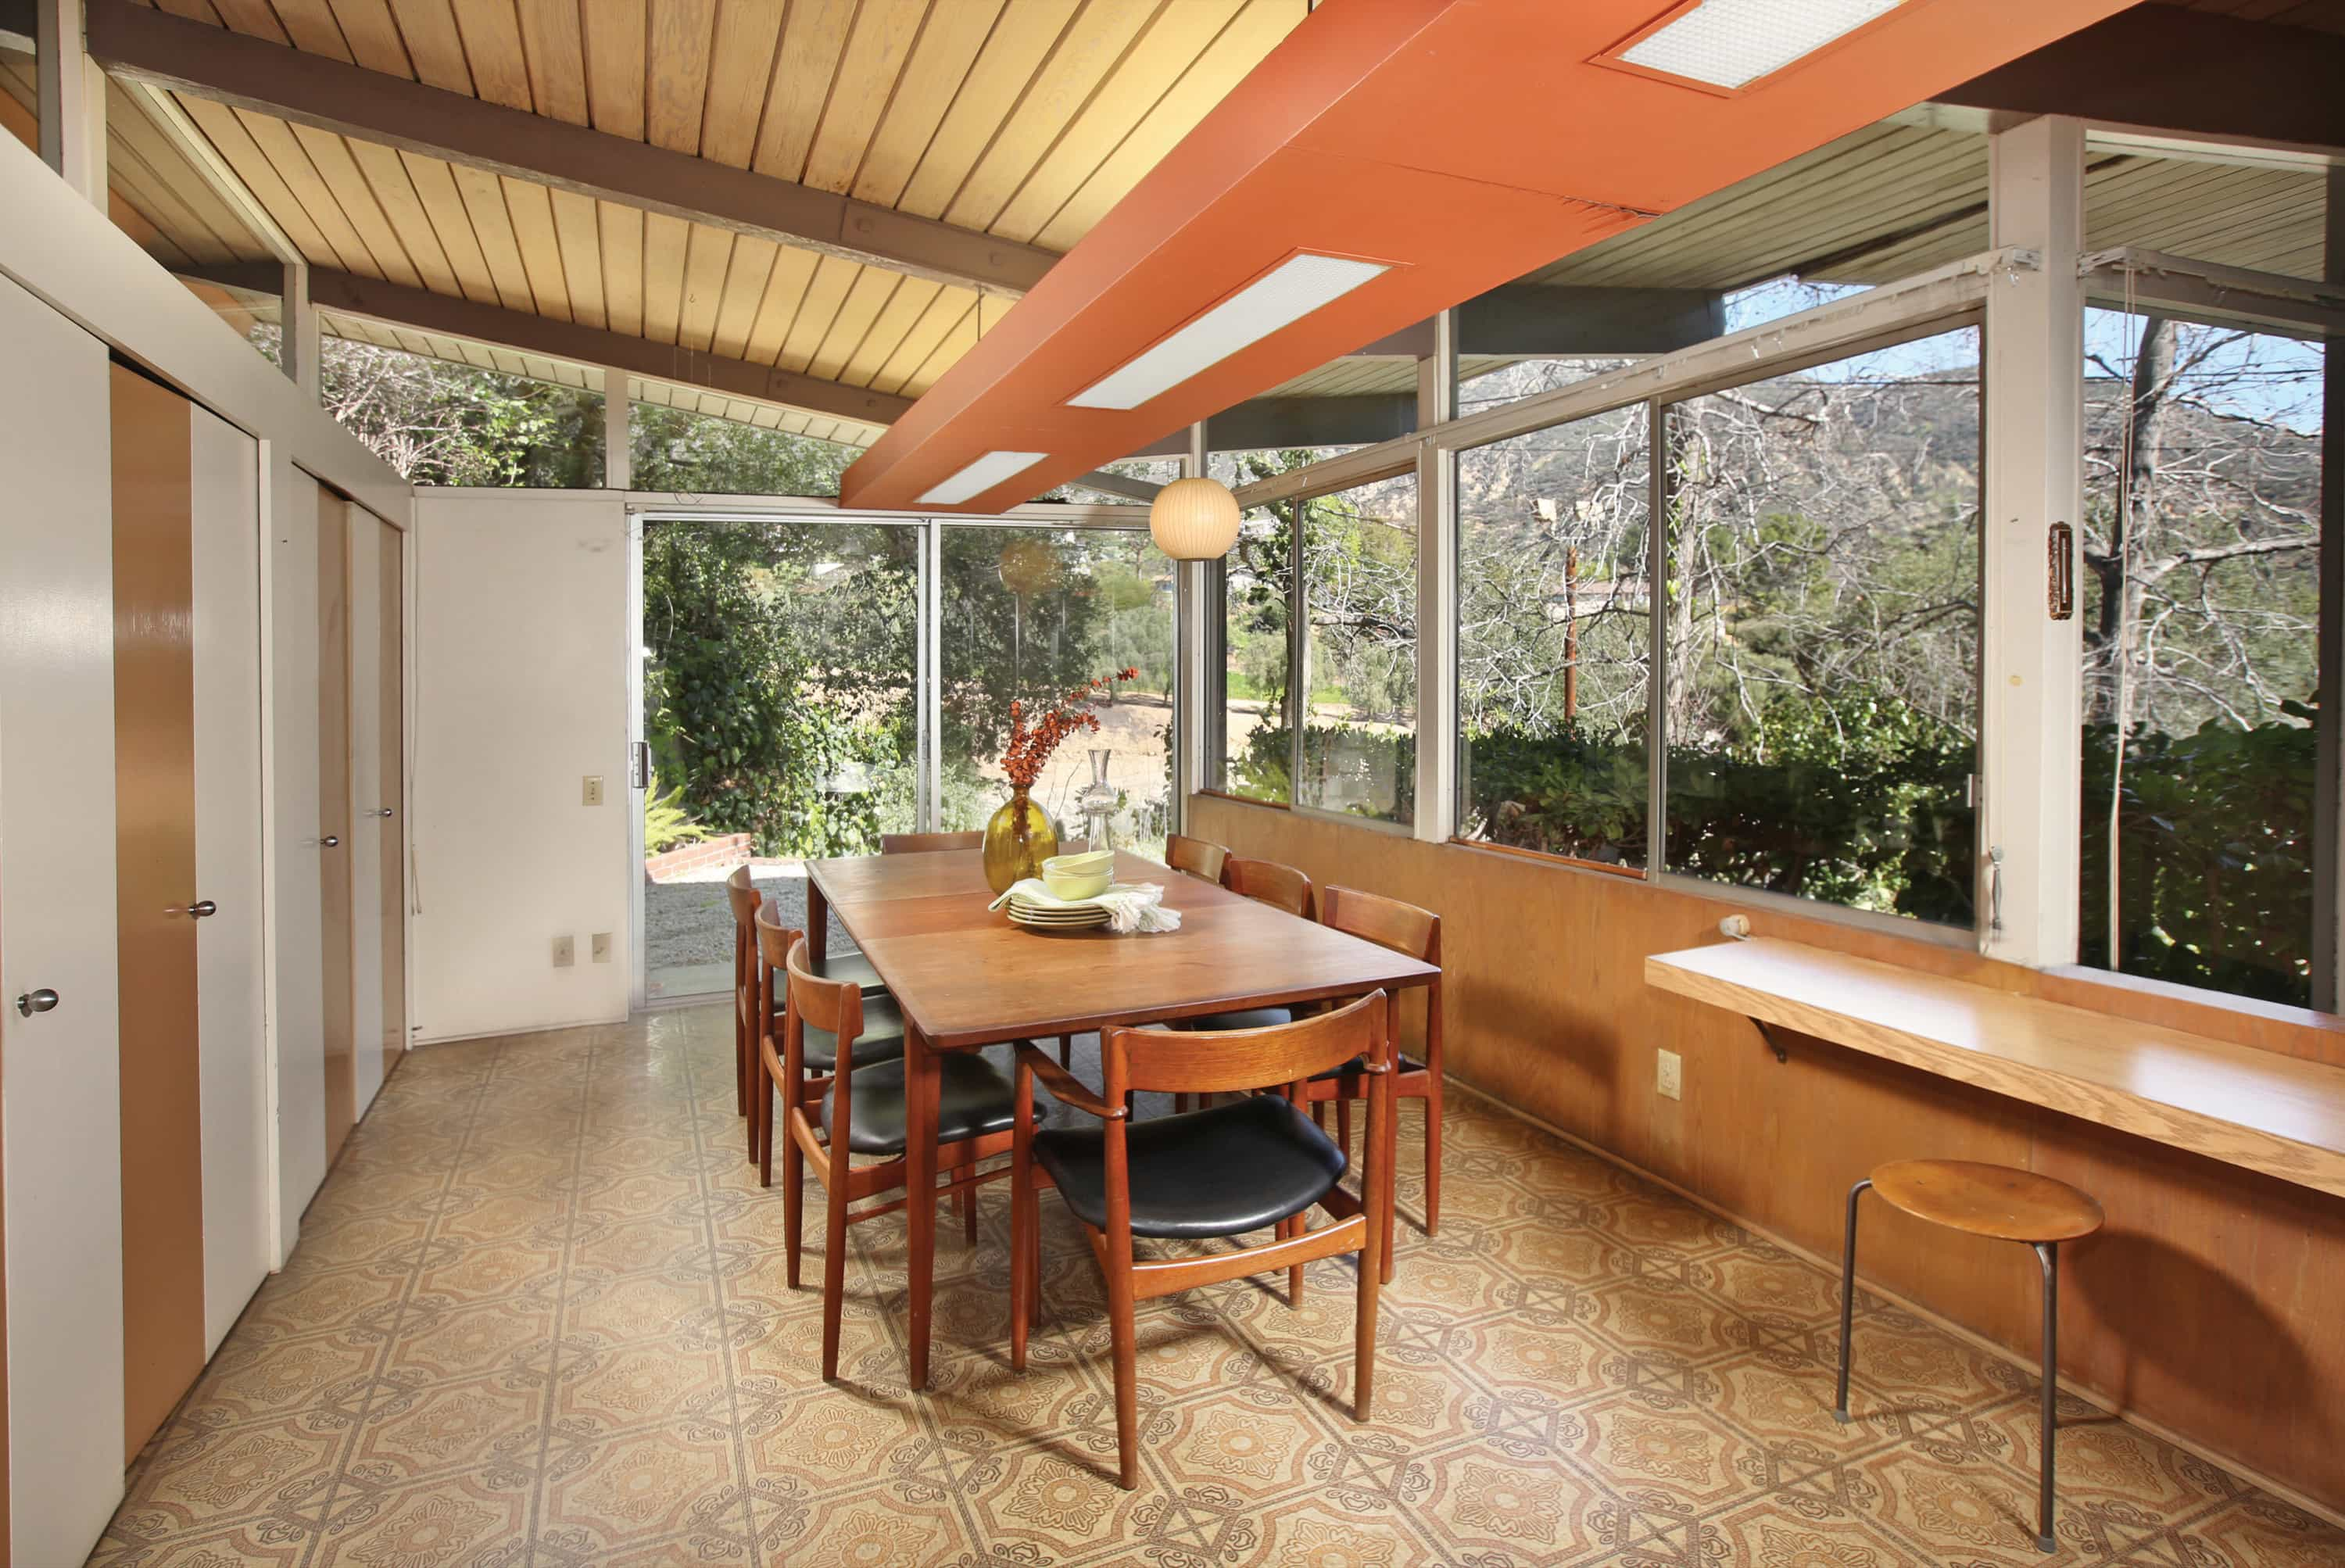 Kemper Nomland Jr mid-century House in Altadena - dining area